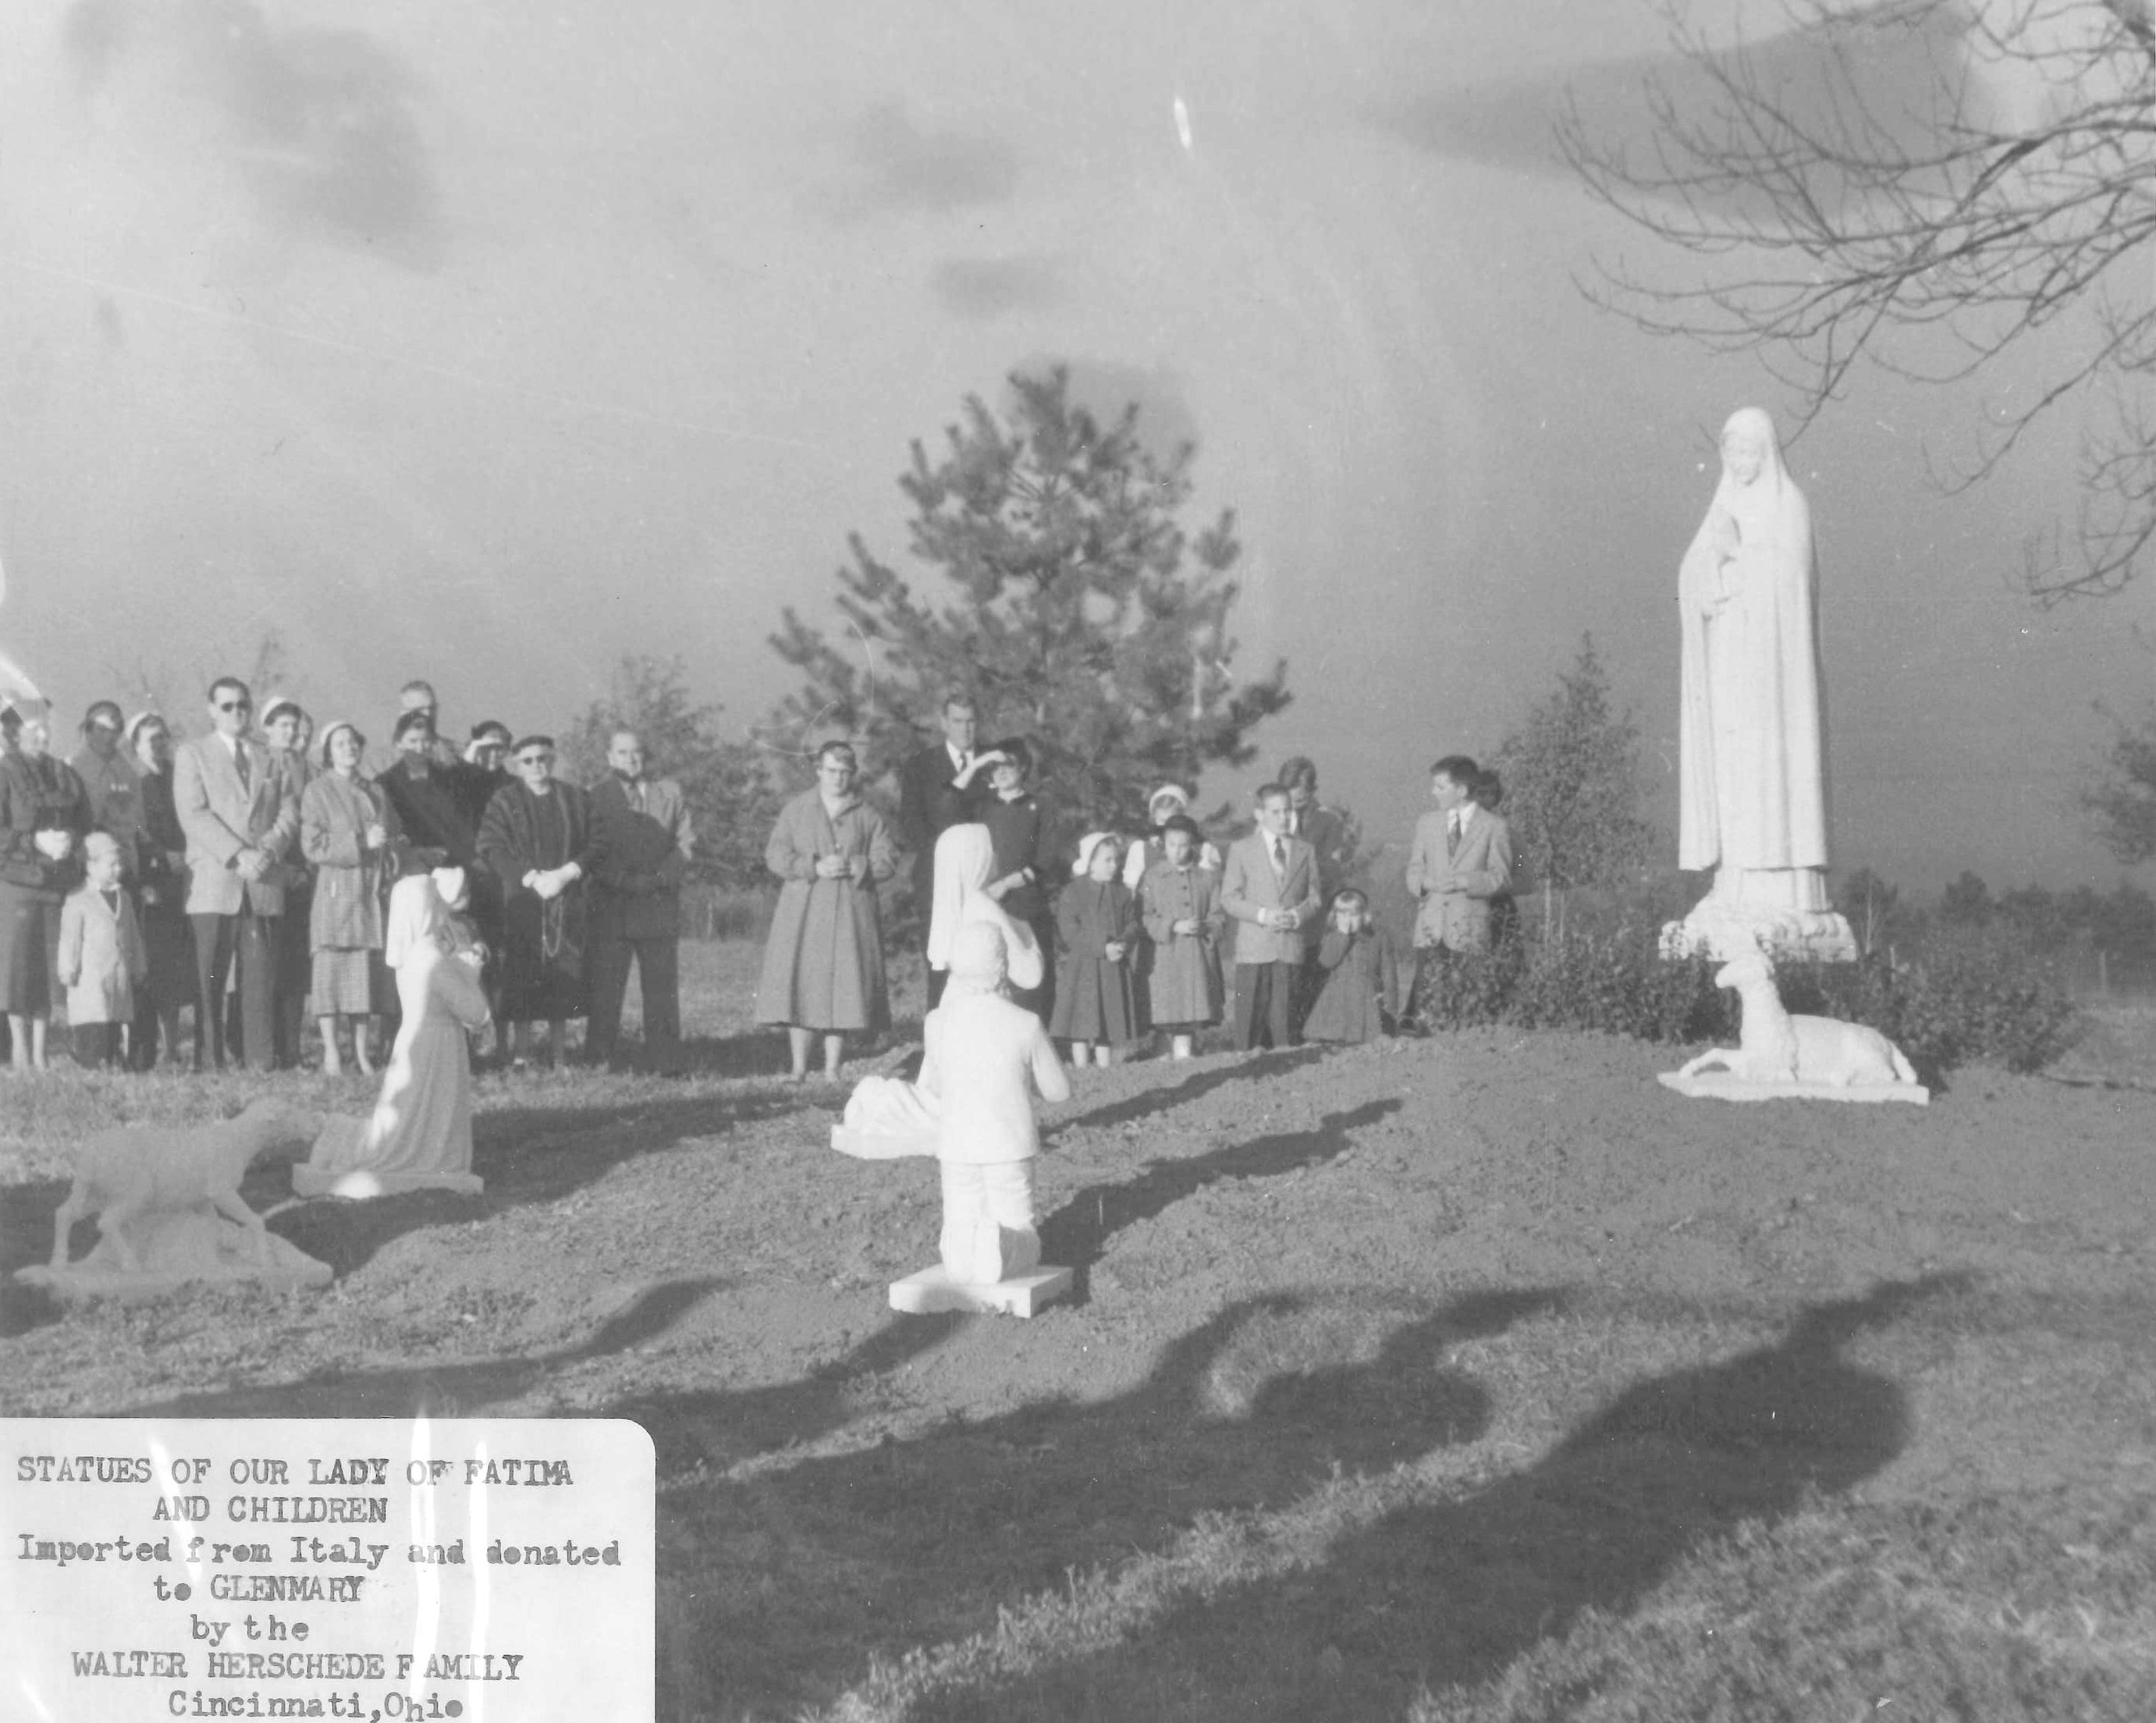 Our Lady of Fatima, history of a shrine